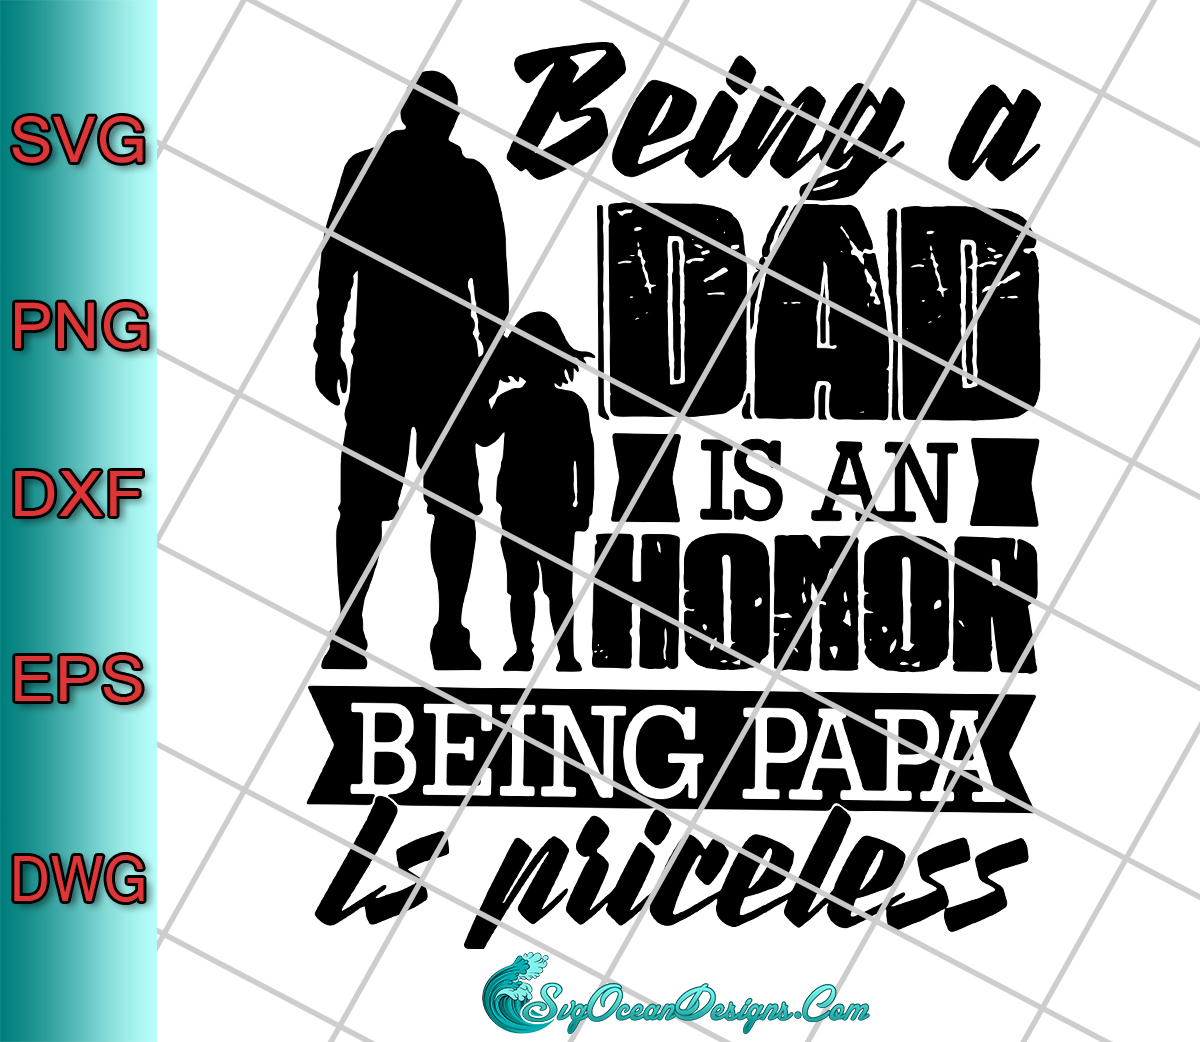 Being A Dad Is An Honor Being Papa Is Priceless Svg Png Dxf Eps Cut File Designs Digital Download